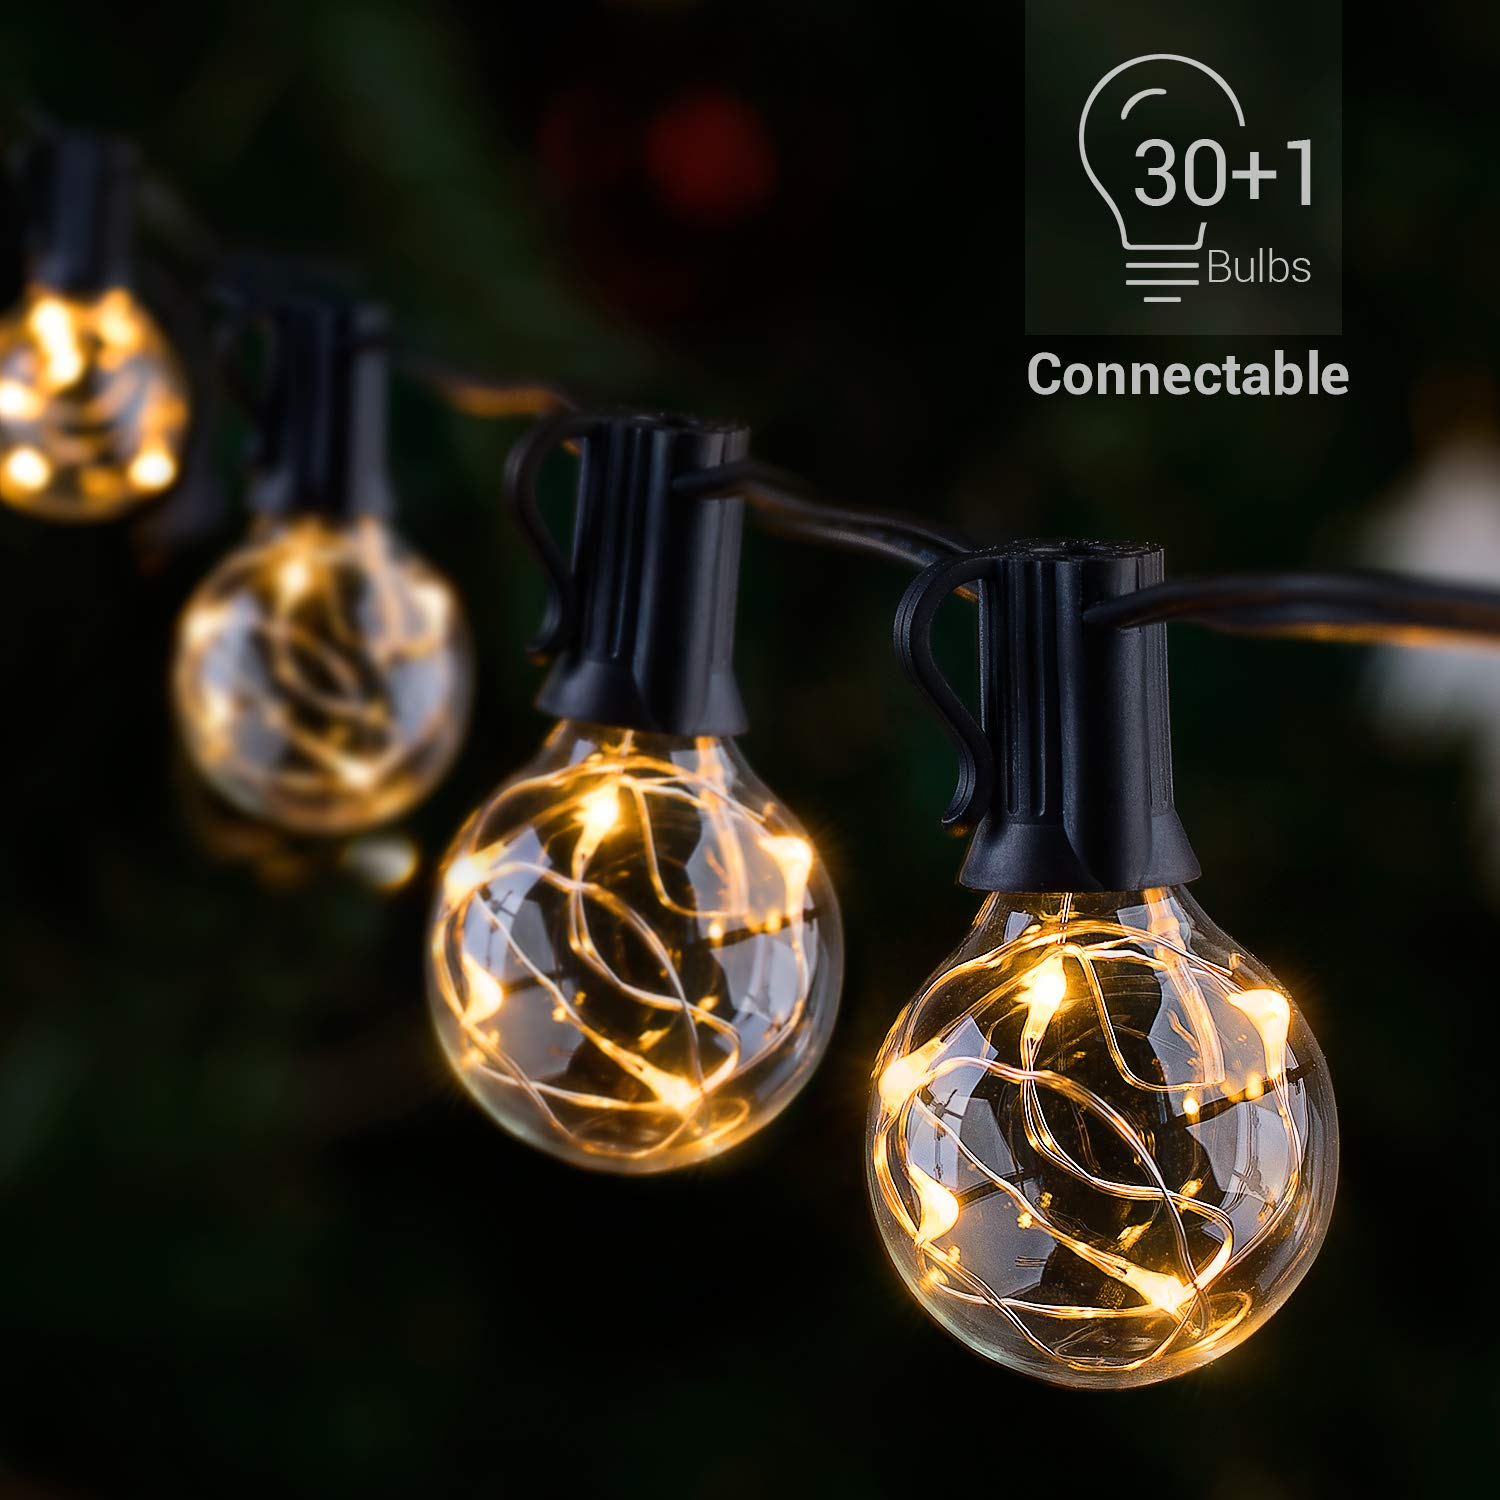 Novtech LED Outdoor String Lights Waterproof Patio String Lights - 32FT 30Bulbs G40 Globe String Lights Outdoor Decorative String Lights for Backyard Pergola Party Bistro Porch Cafe - Connectable